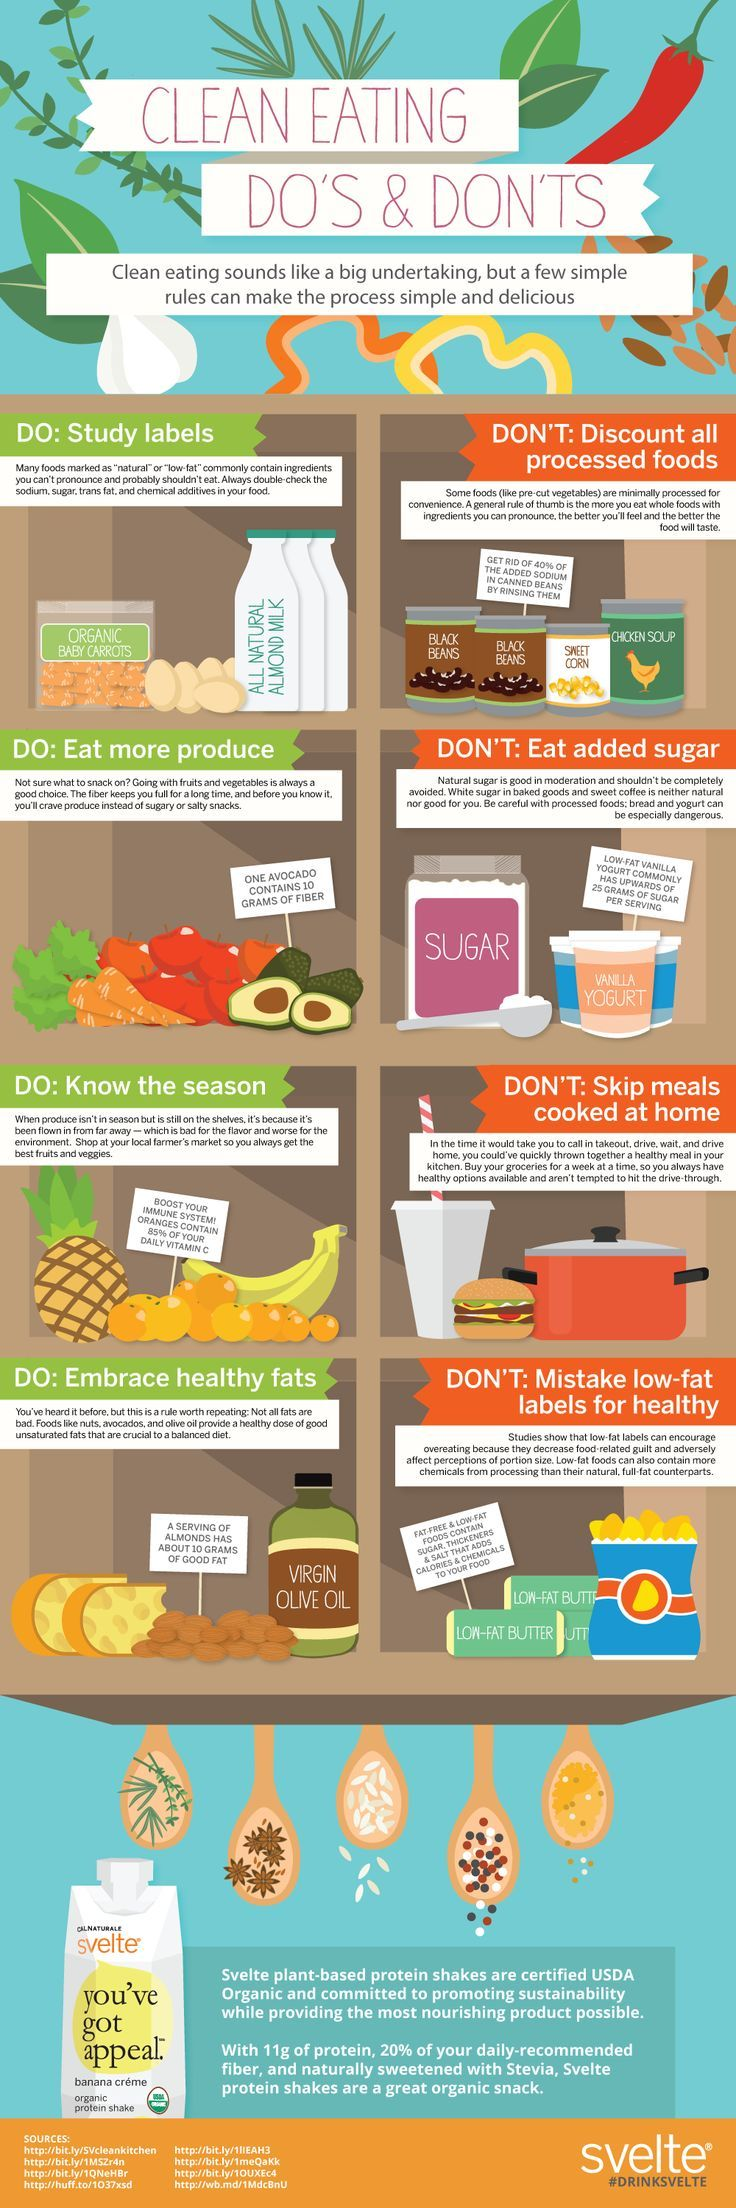 Clean eating sounds like a big undertaking, but a few simple rules can make the process simple and delicious. #infographic